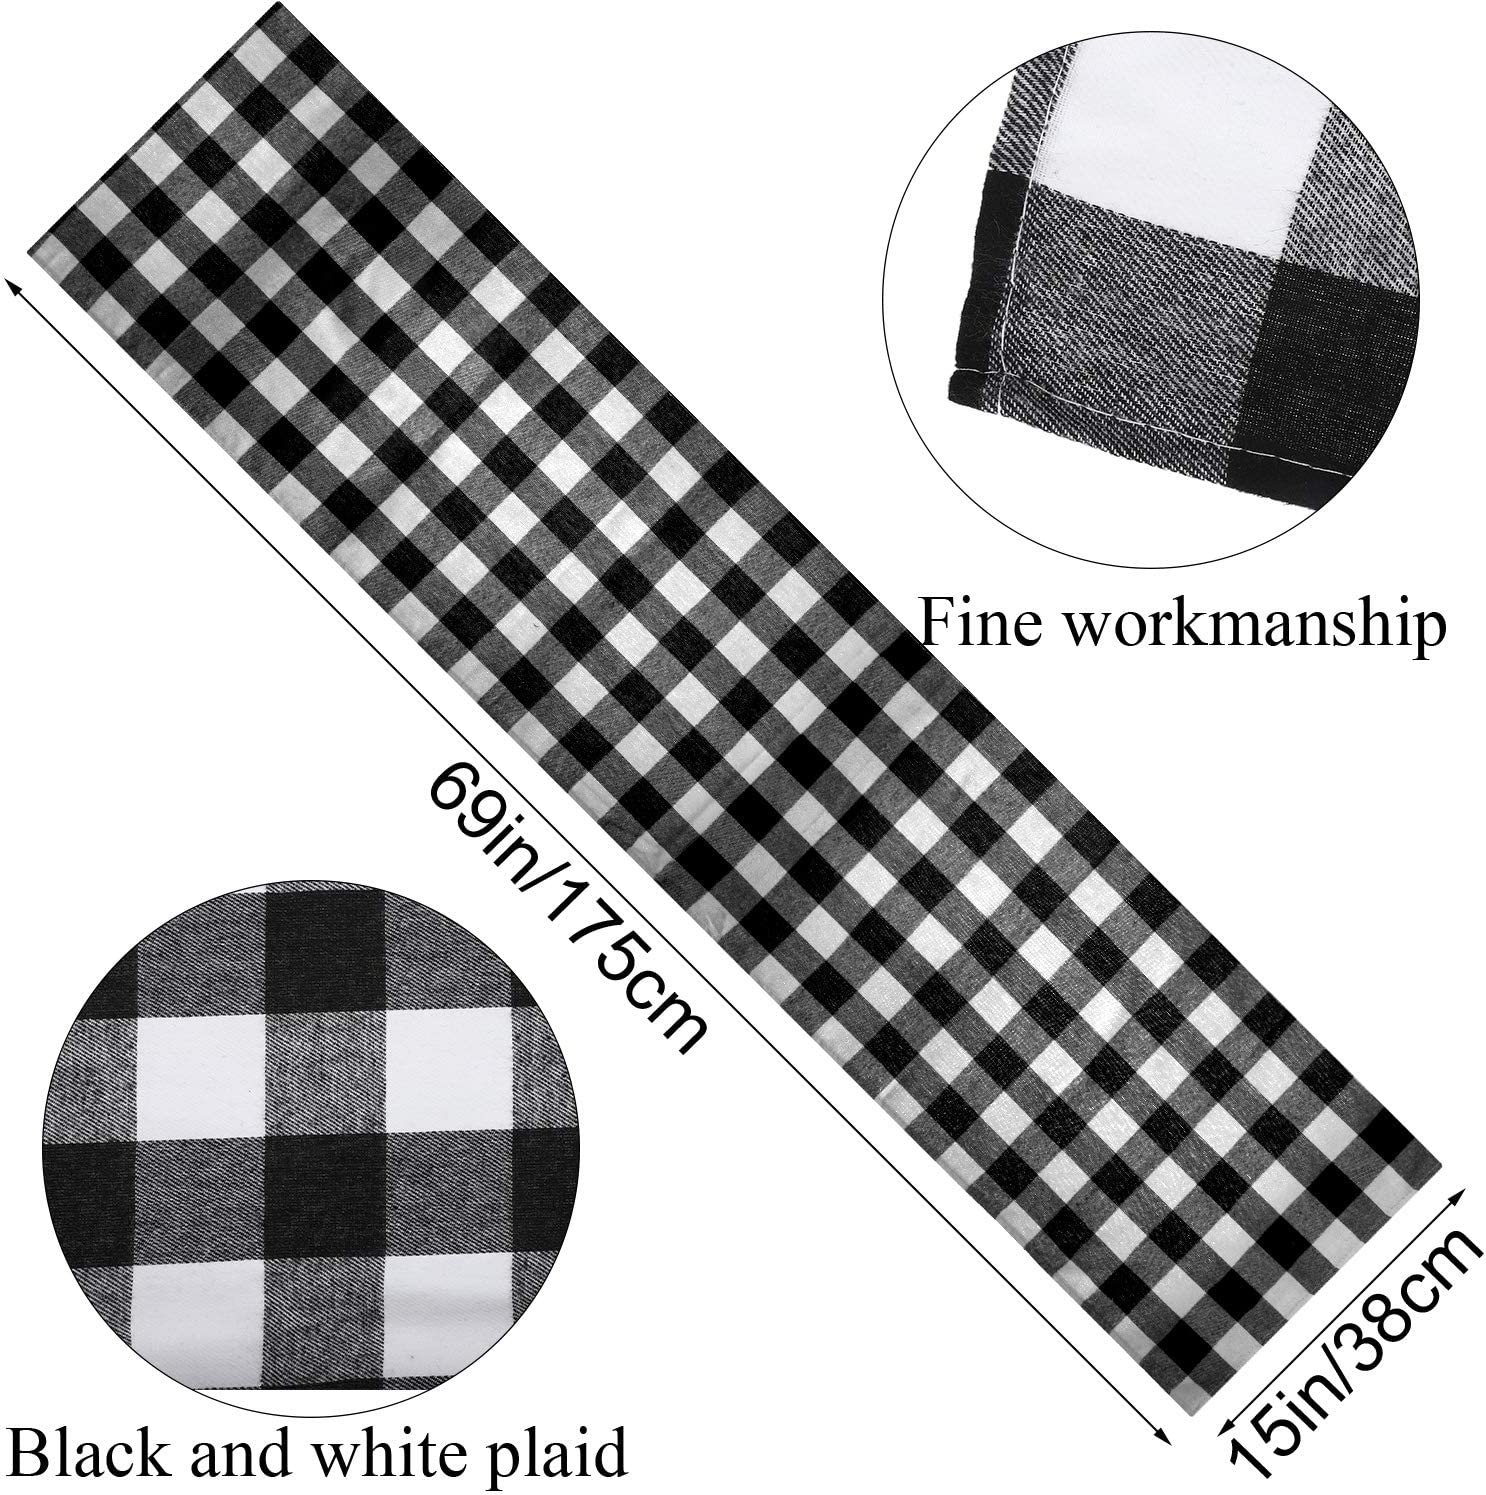 Christmas Plaid Table Runner Cotton Table Linens and 6 Pieces Gingham Table Placemats for Holiday Gatherings Dinner Parties Christmas Table Decorations Red and Black